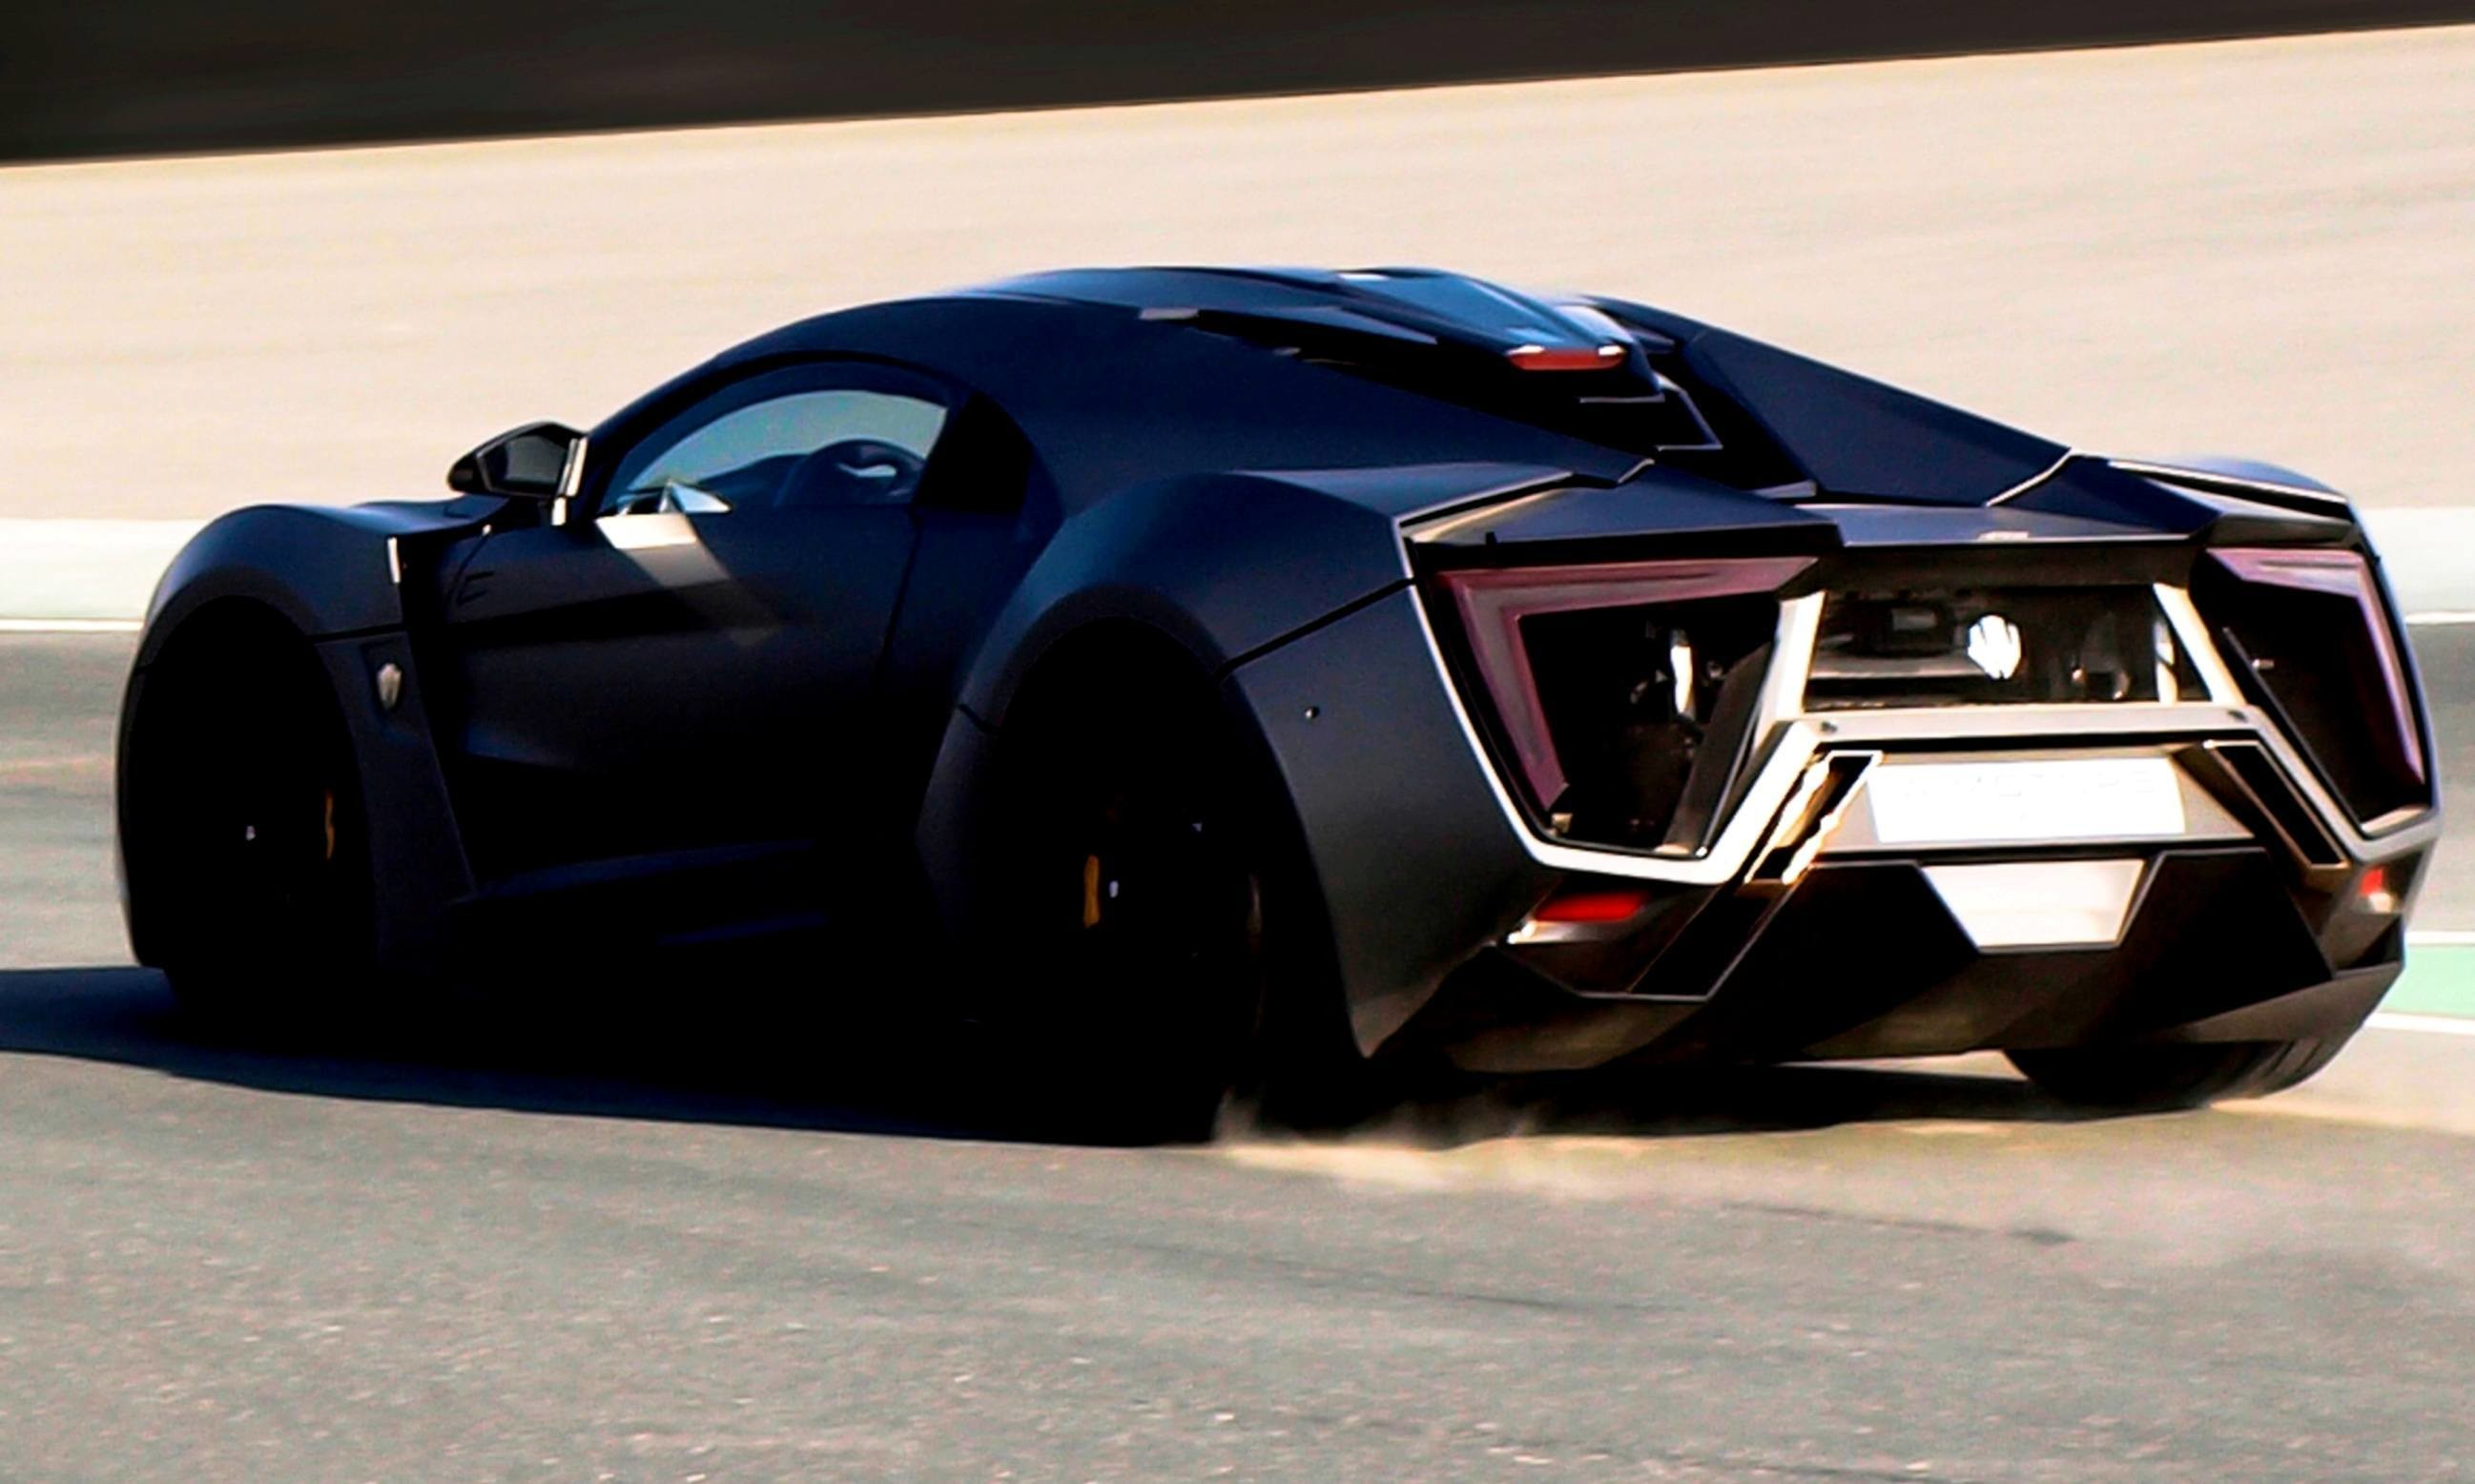 2595x1556 2014 W Motors Lykan Hypersport in 40+ Amazing New Wallpapers, Including  MegaLux Interior 23